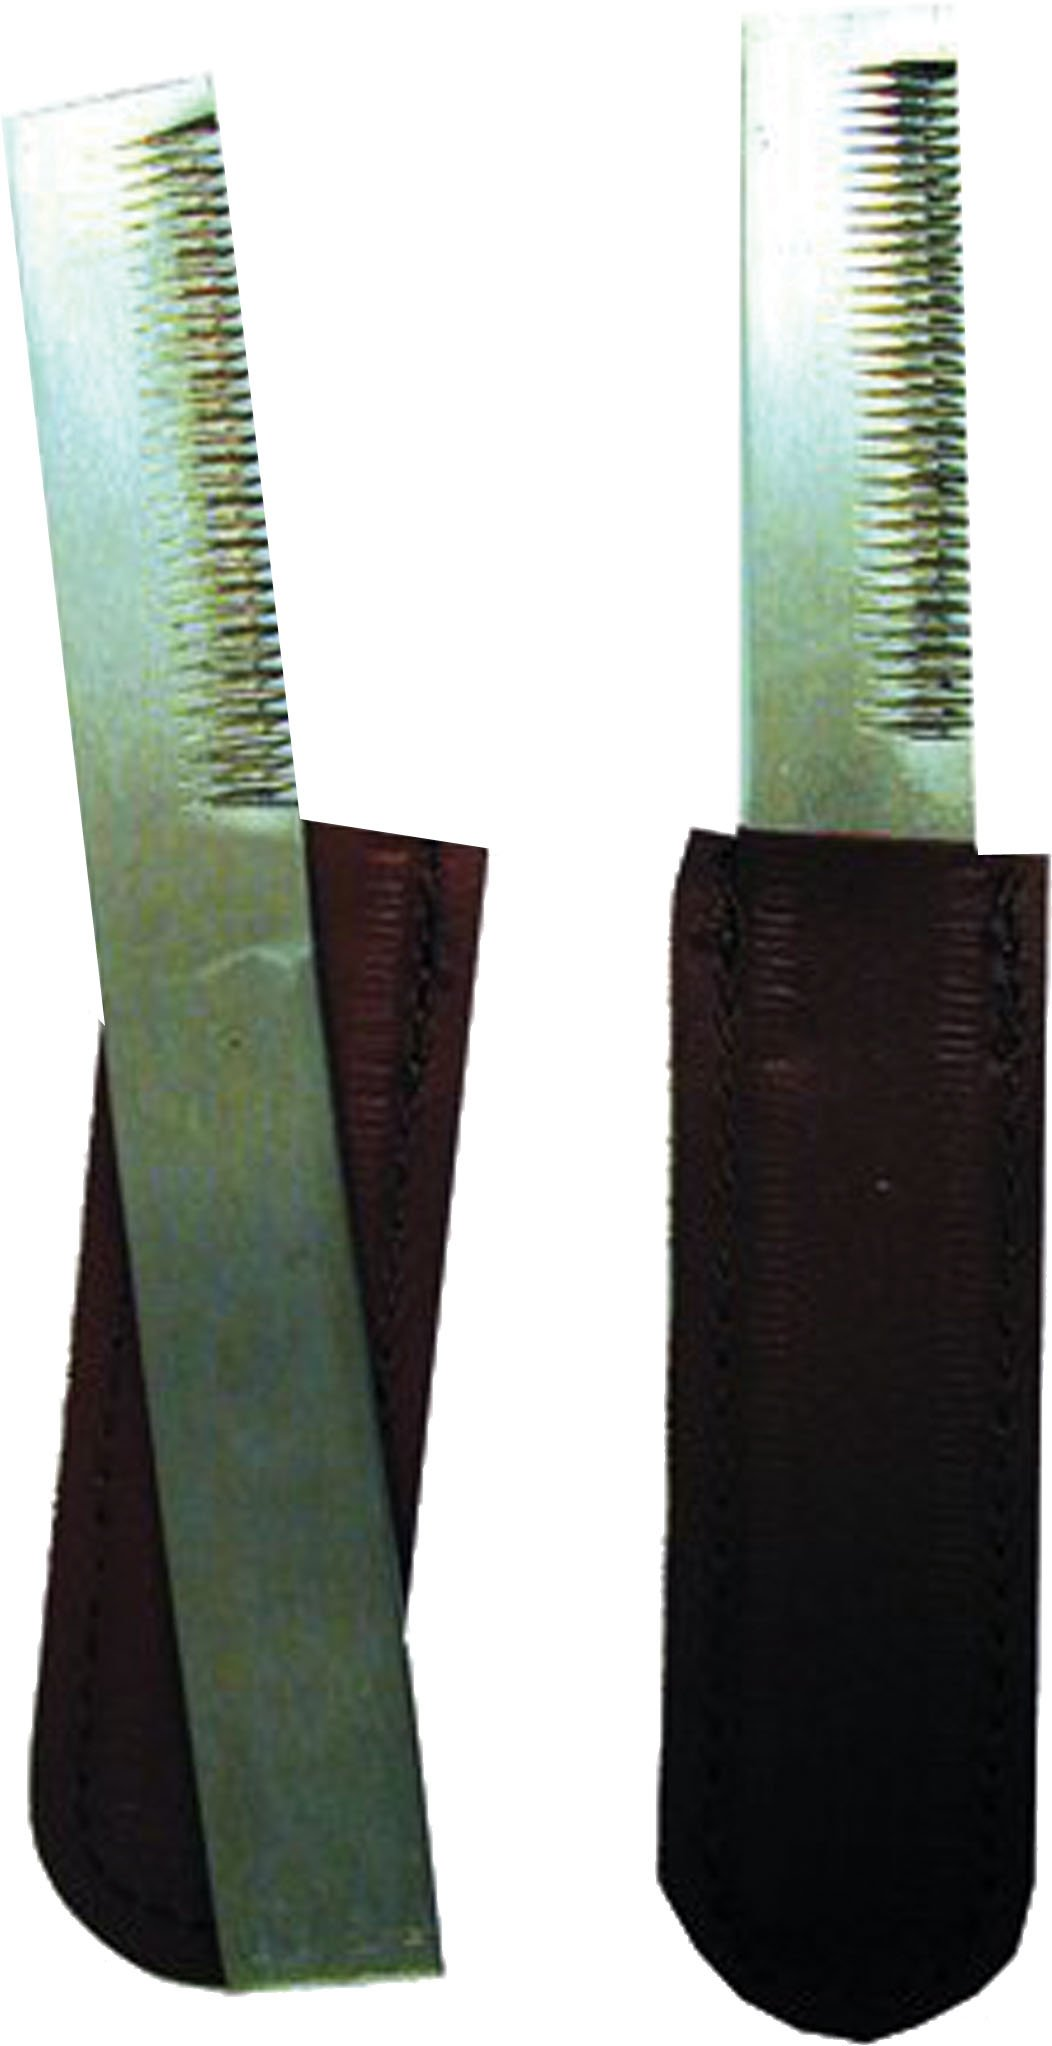 Intrepid International Stripping Comb